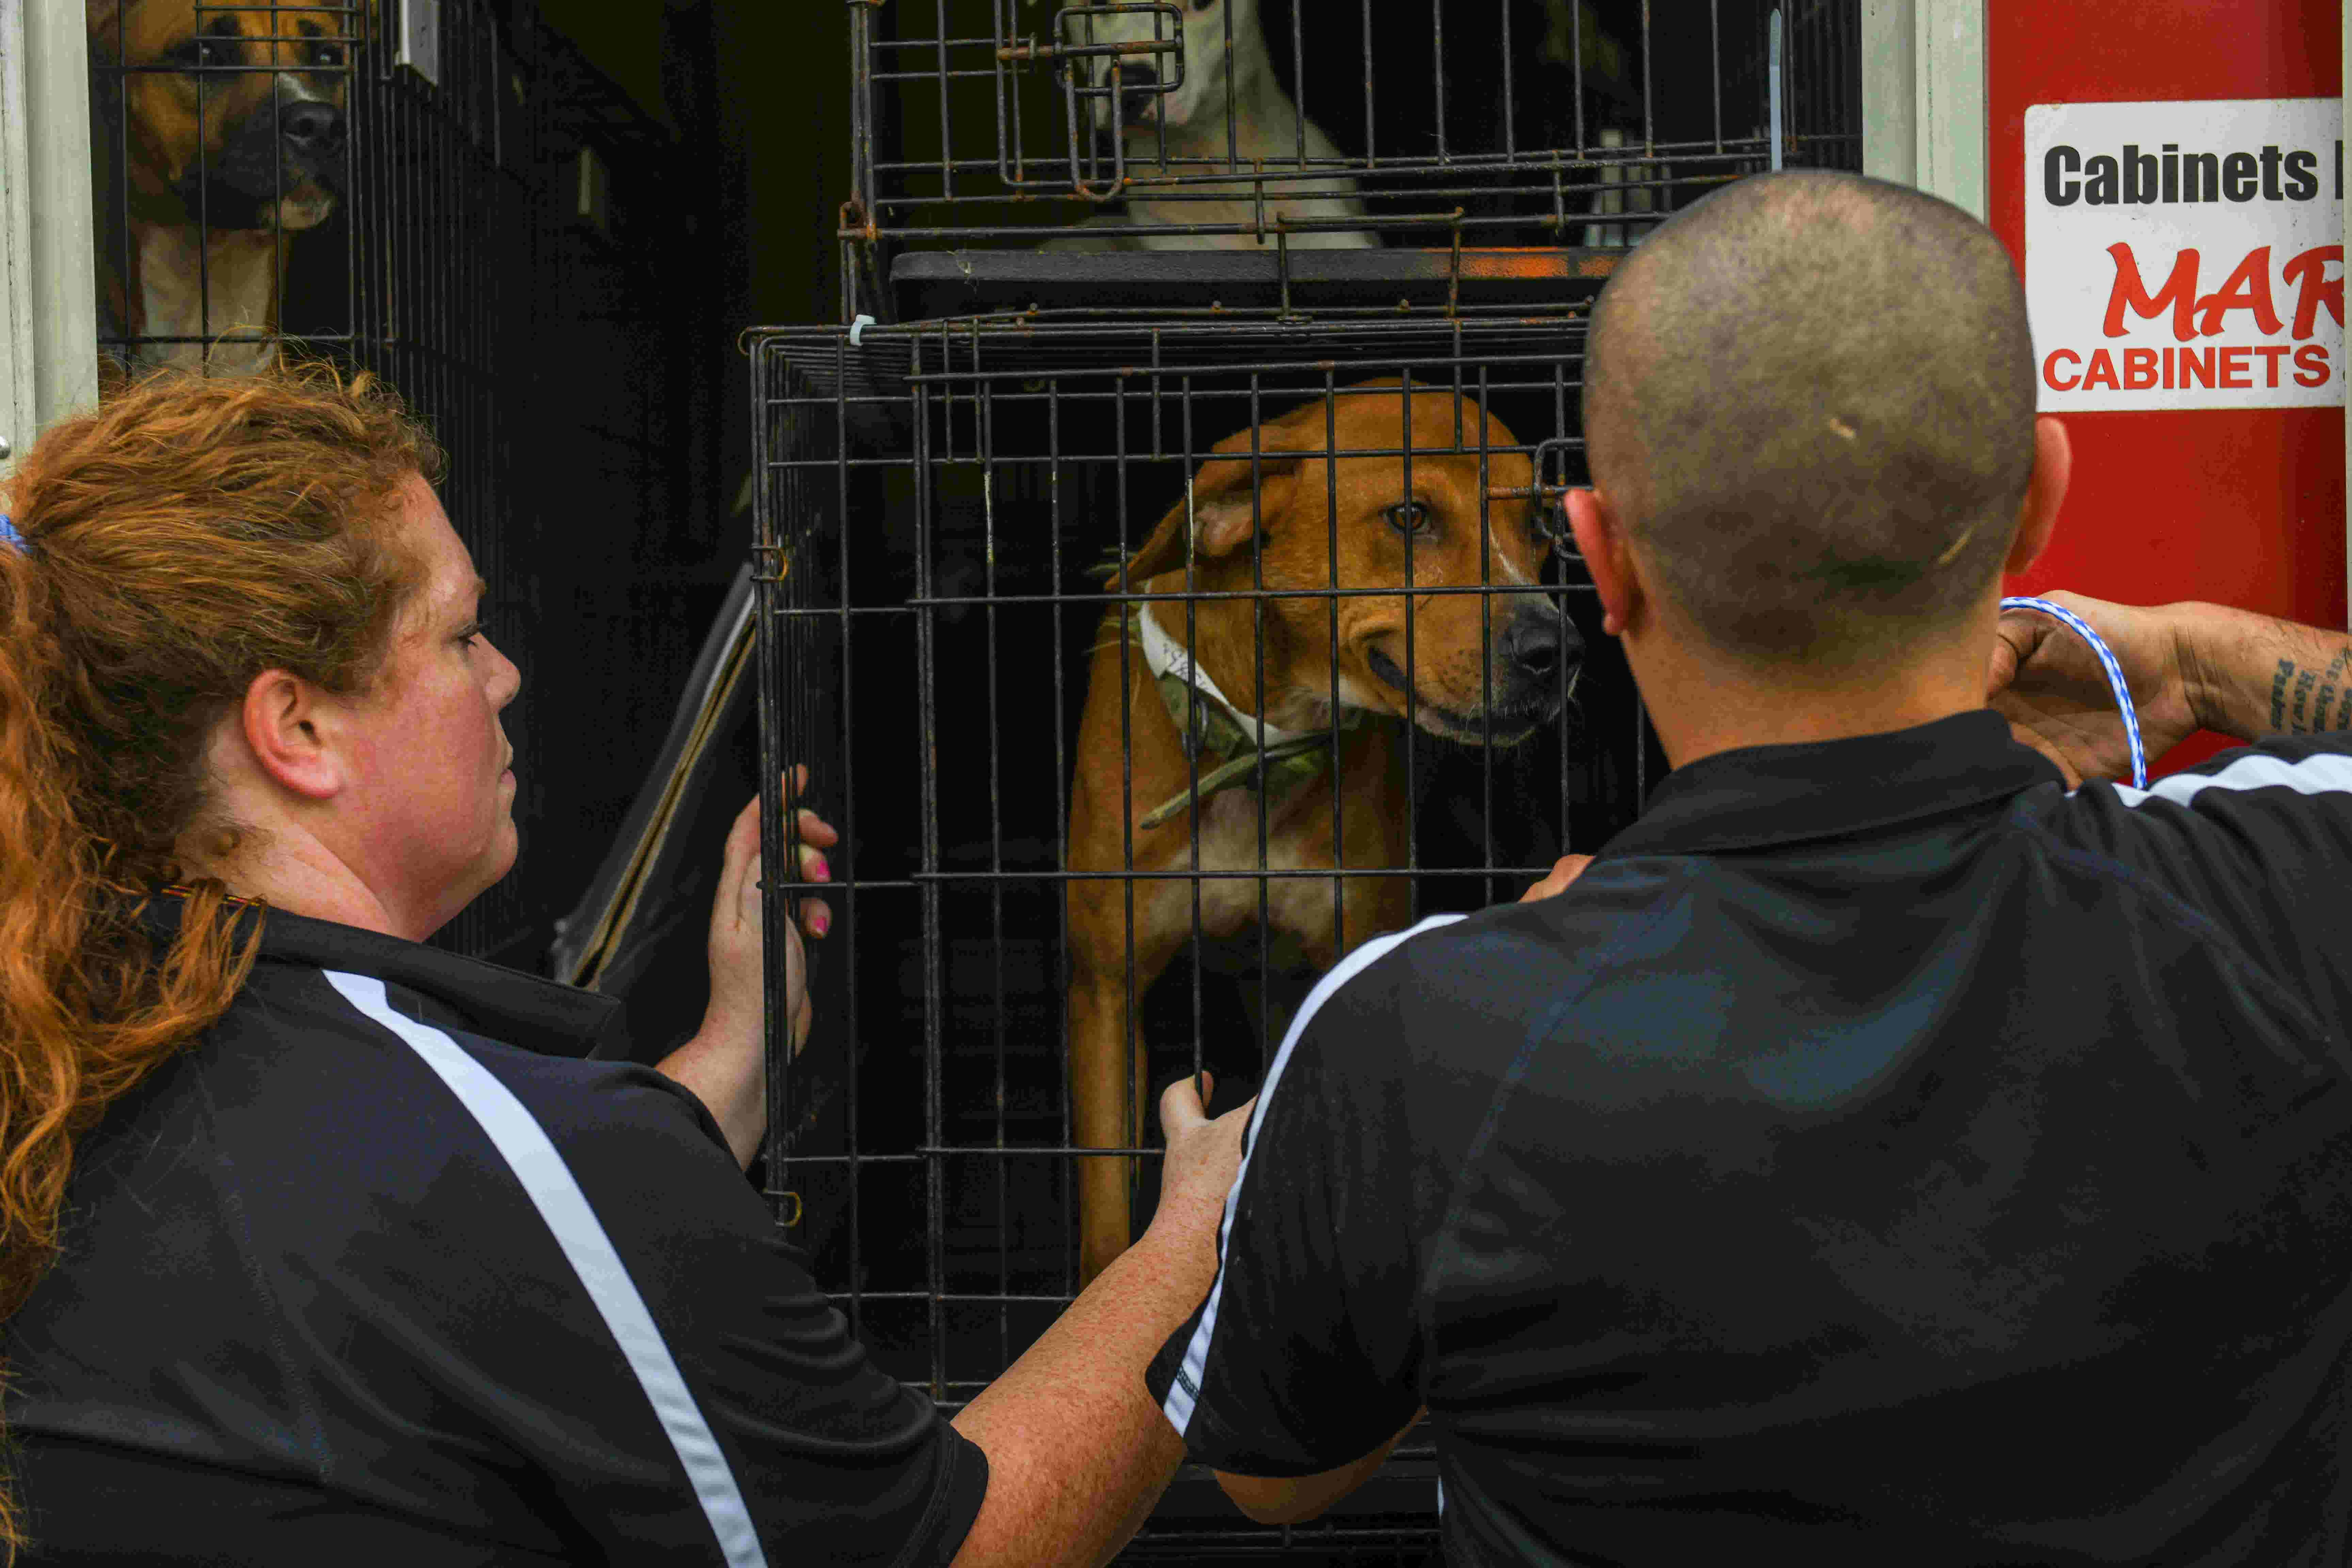 WATCH: Dogs displaced by Hurricane Florence arrive in Georgetown